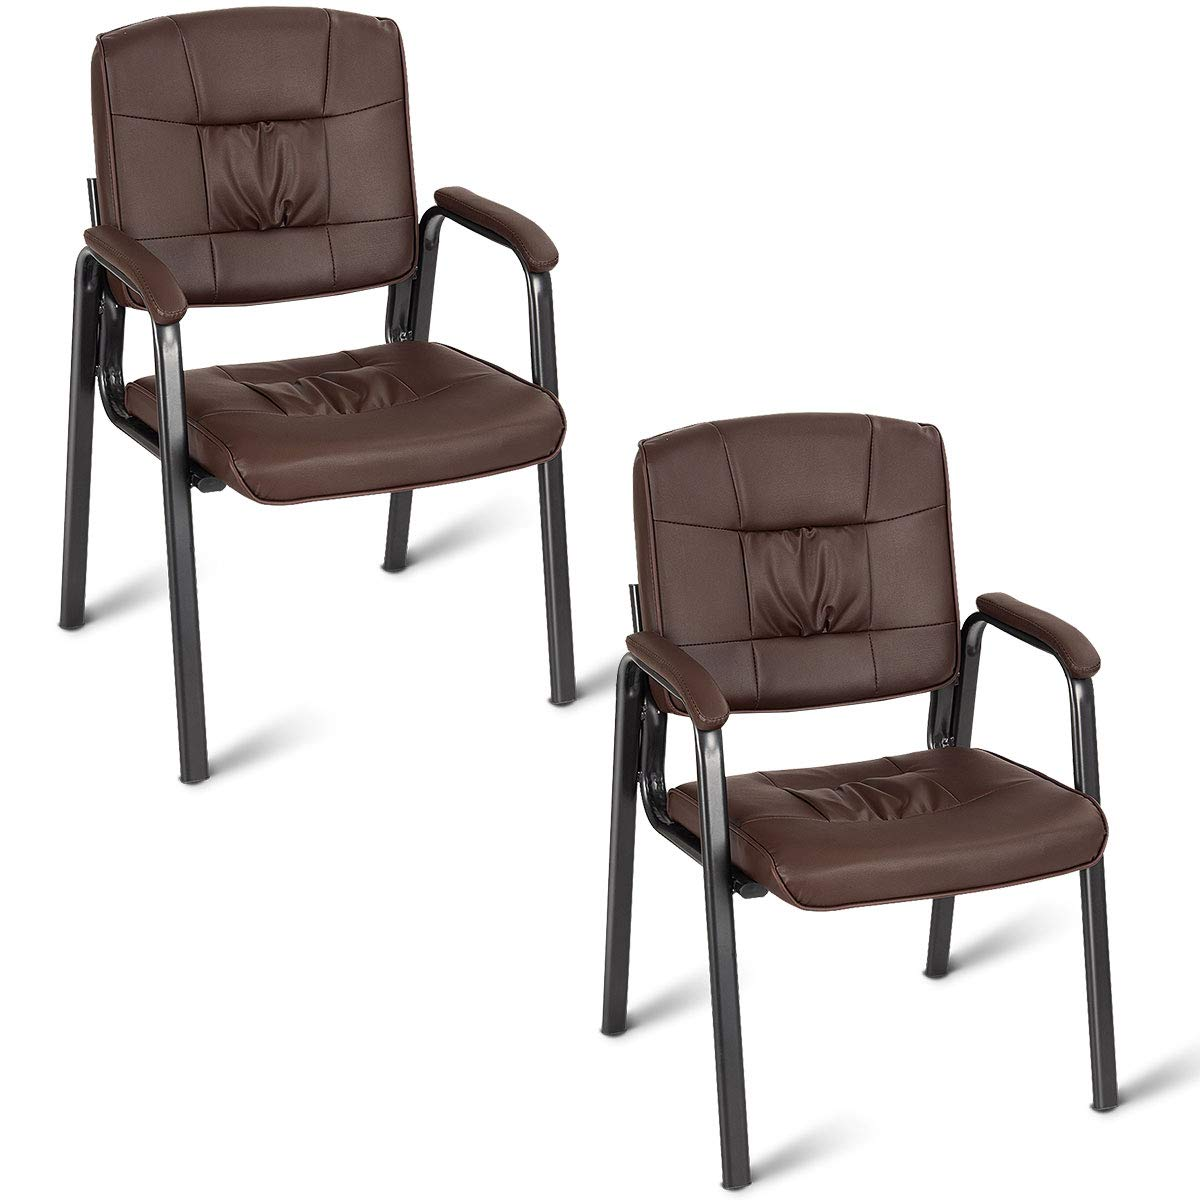 Giantex 2 PCS Reception Chair PU Leather Office Executive Ergonomic Guest Meeting Chair (Brown)